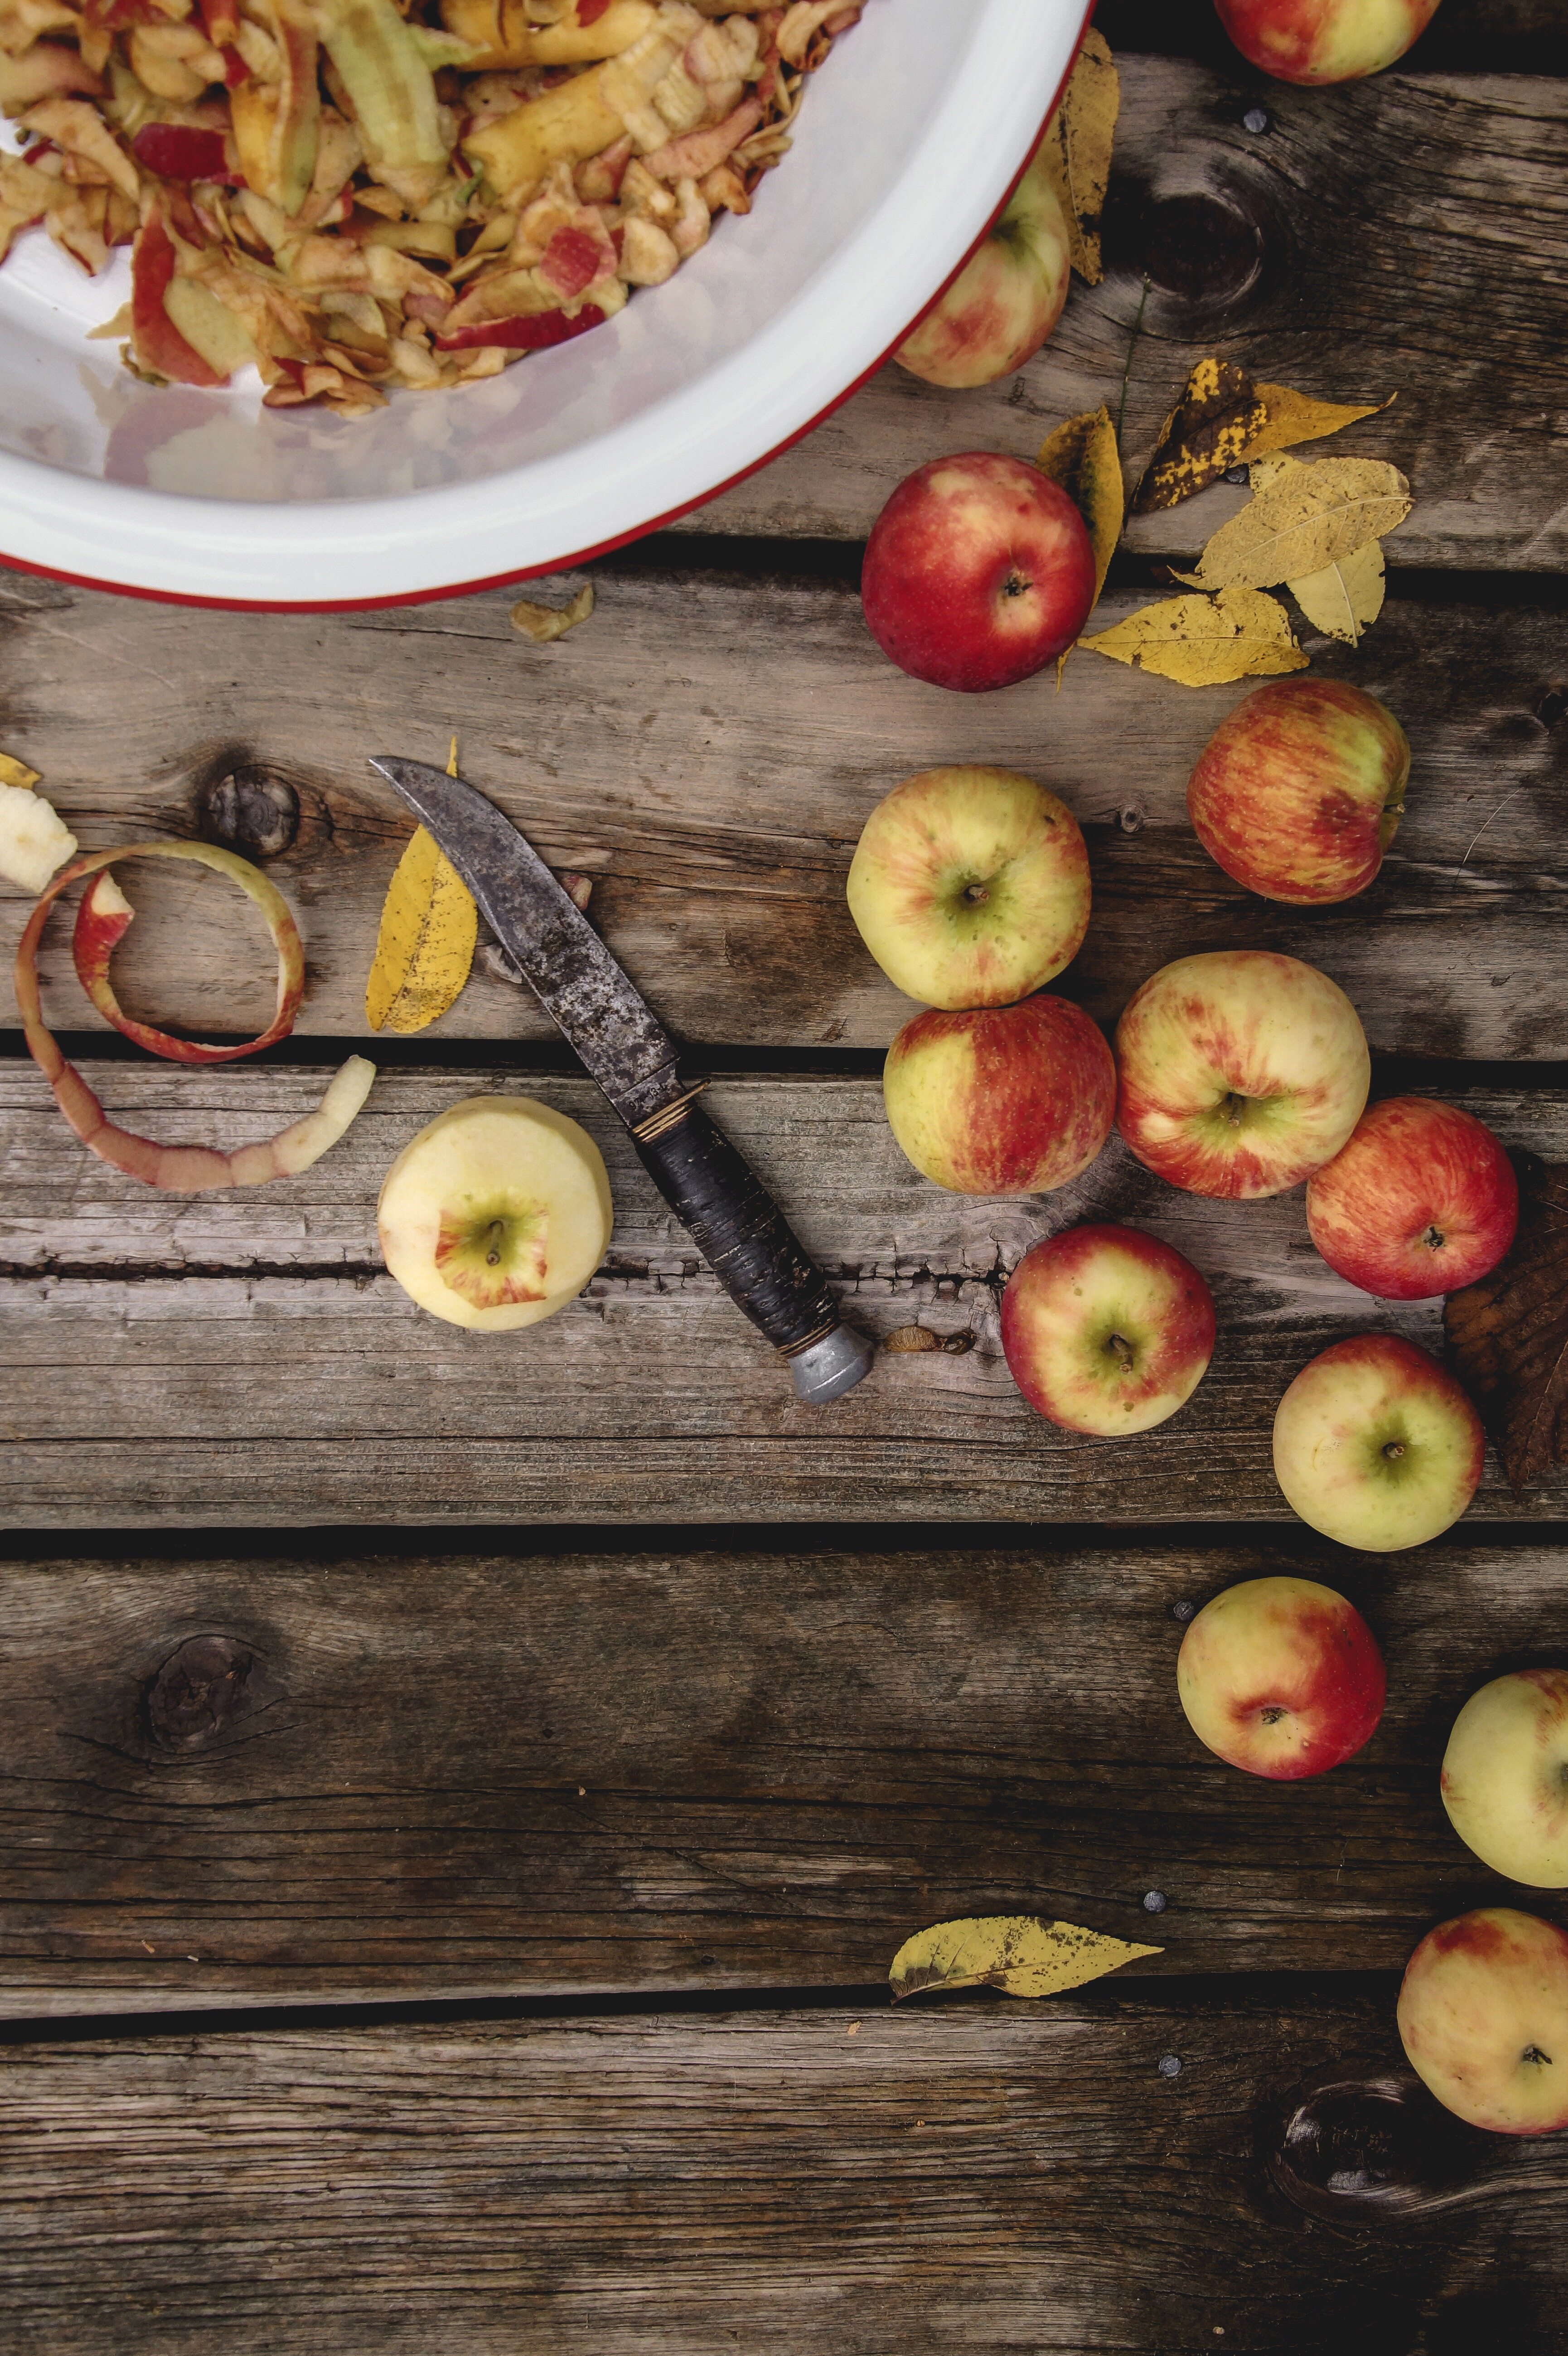 What can you make with apple peels, ways to use leftover apple peels, apple peel recipes, better than apple chips recipes, apple chips recipes, apple peel chips, apple peel panna cotta, apple recipes, easy apple dessert recipes, photos of fall